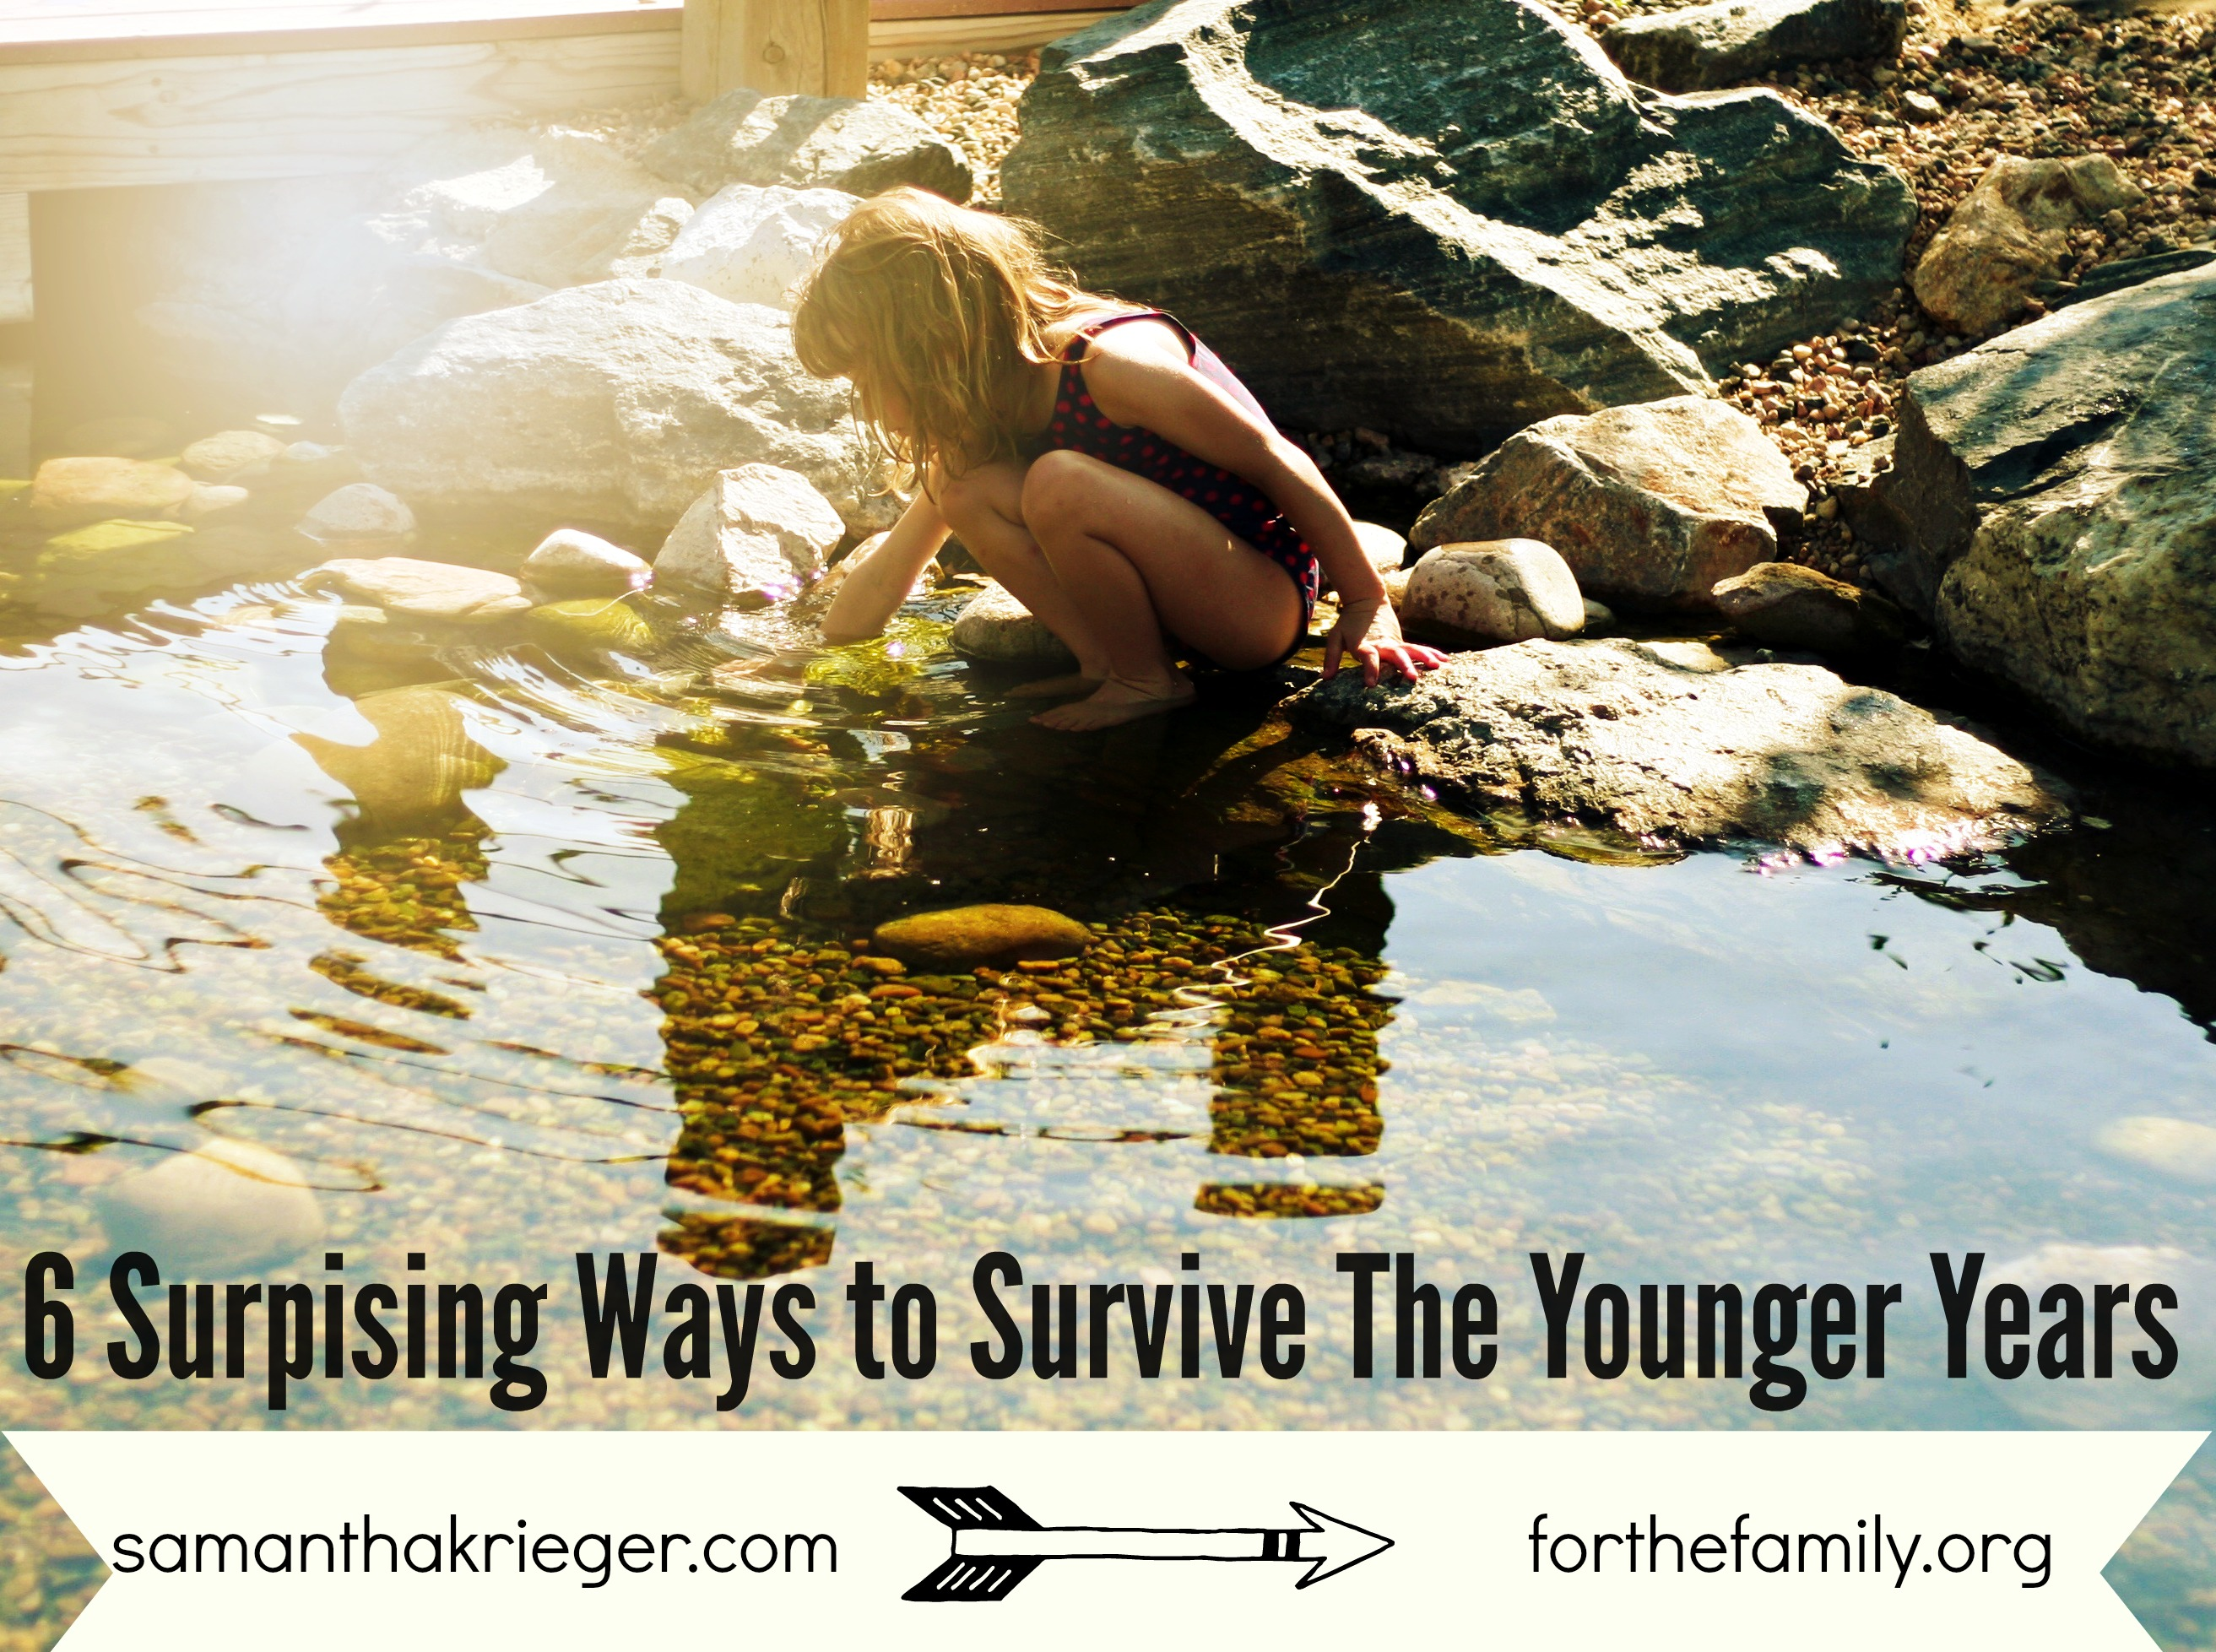 6 Surprising Ways to Survive The Younger Years